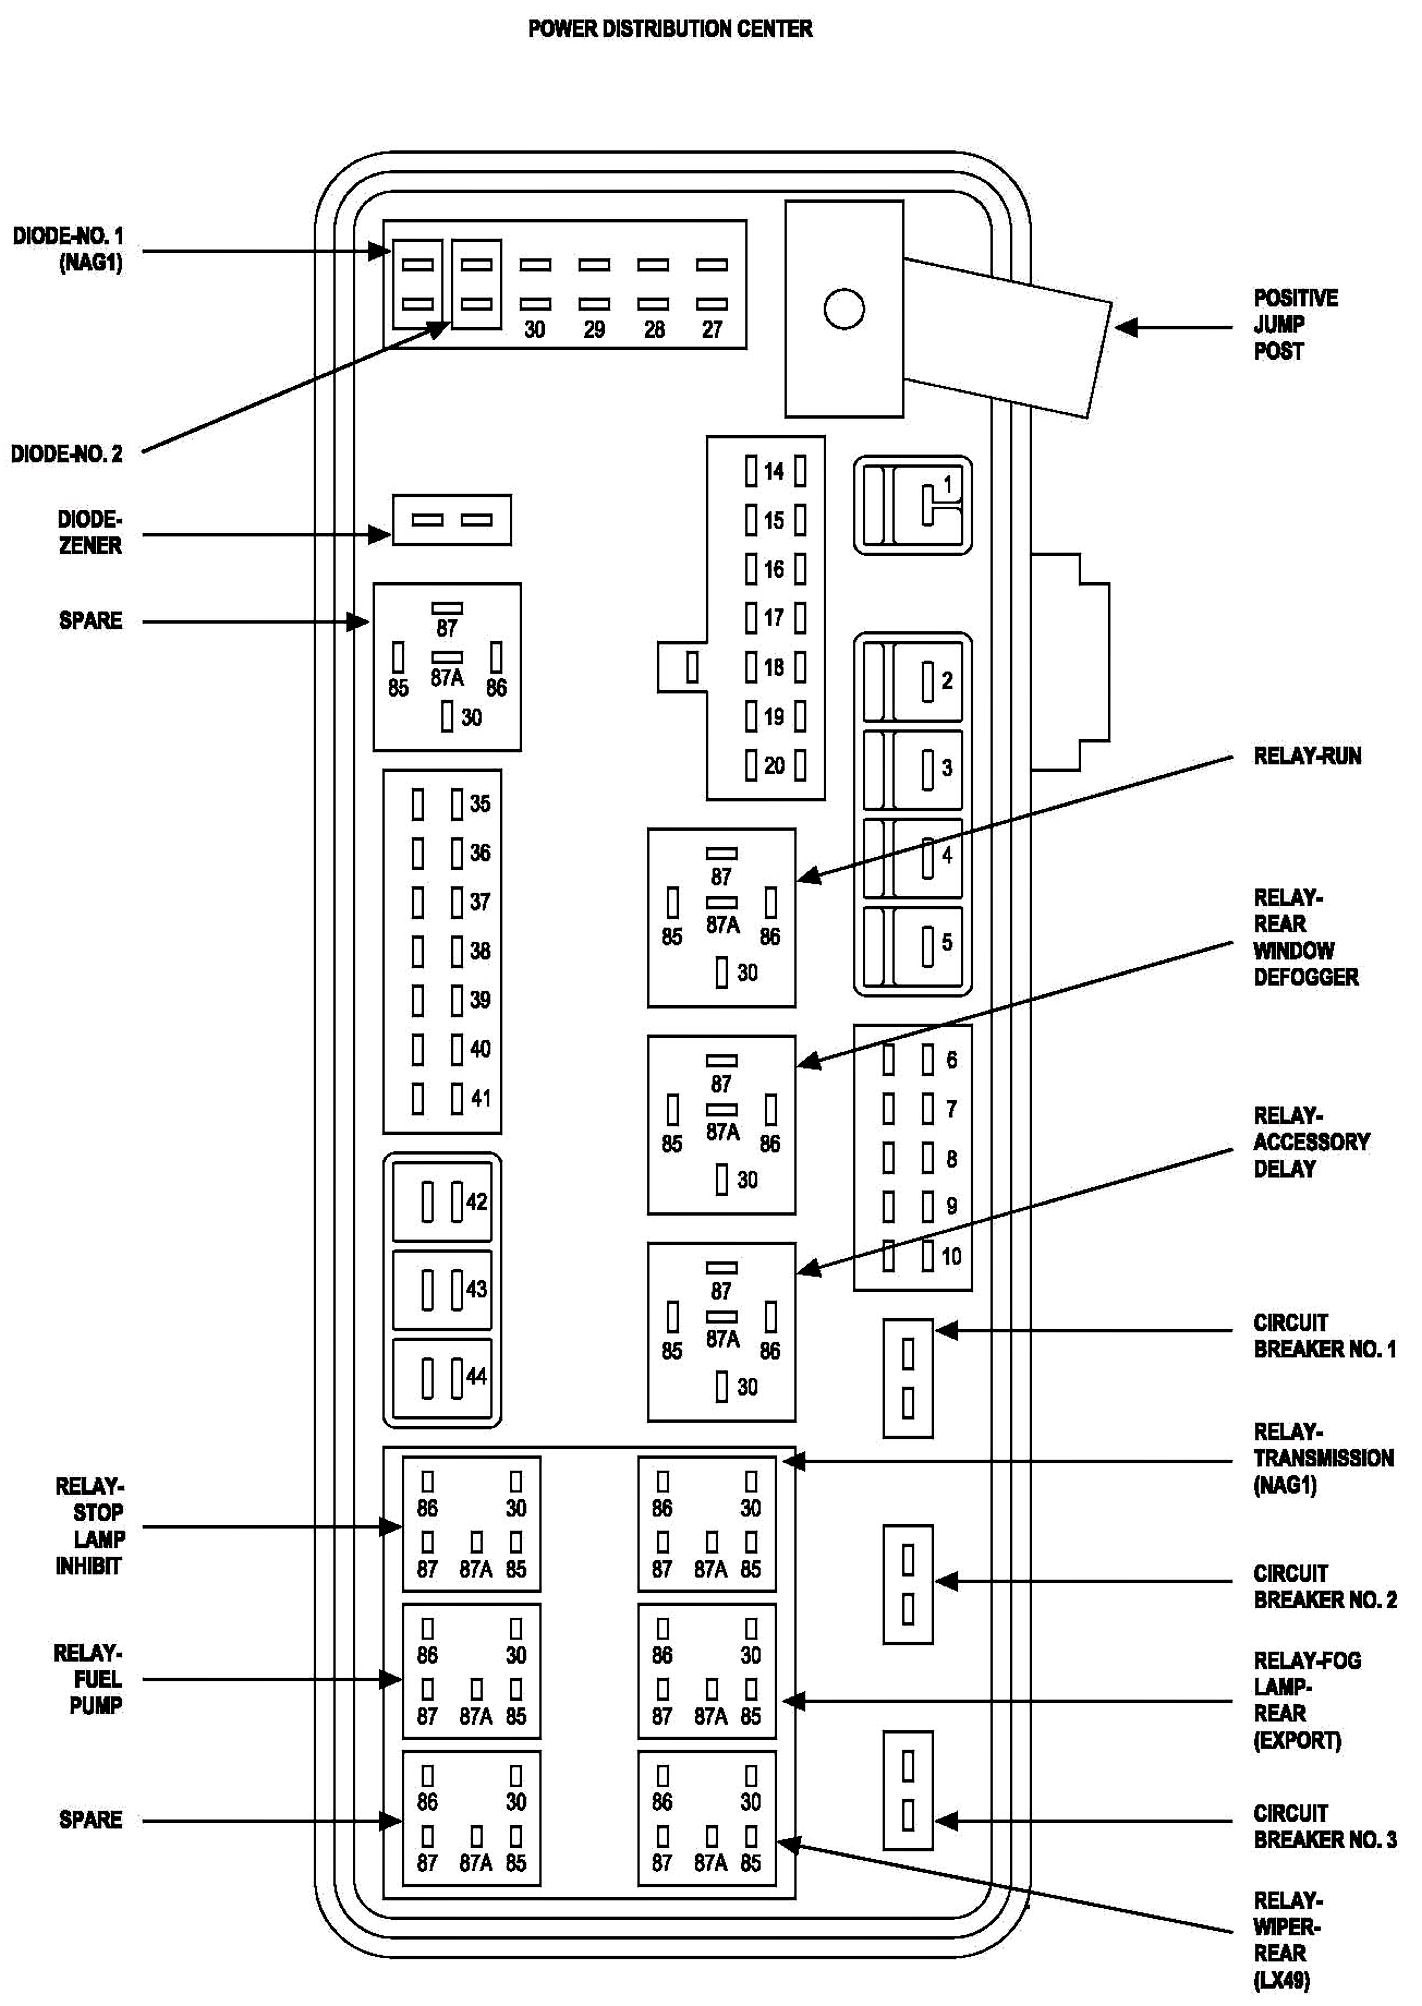 2006 Ford F150 Fuse Box Location 04 F250 Fuel Pump Relay Location Wiring Diagram Website as well Toyota Hilux 3 4 2004 Specs And Images also Chrysler 300 2005 Fuse Box likewise Diagram For Chrysler 300 Fuse Box In Trunk furthermore Fuse Box Diagram For 2012 Dodge Journey. on chrysler 300 fuse box in trunk